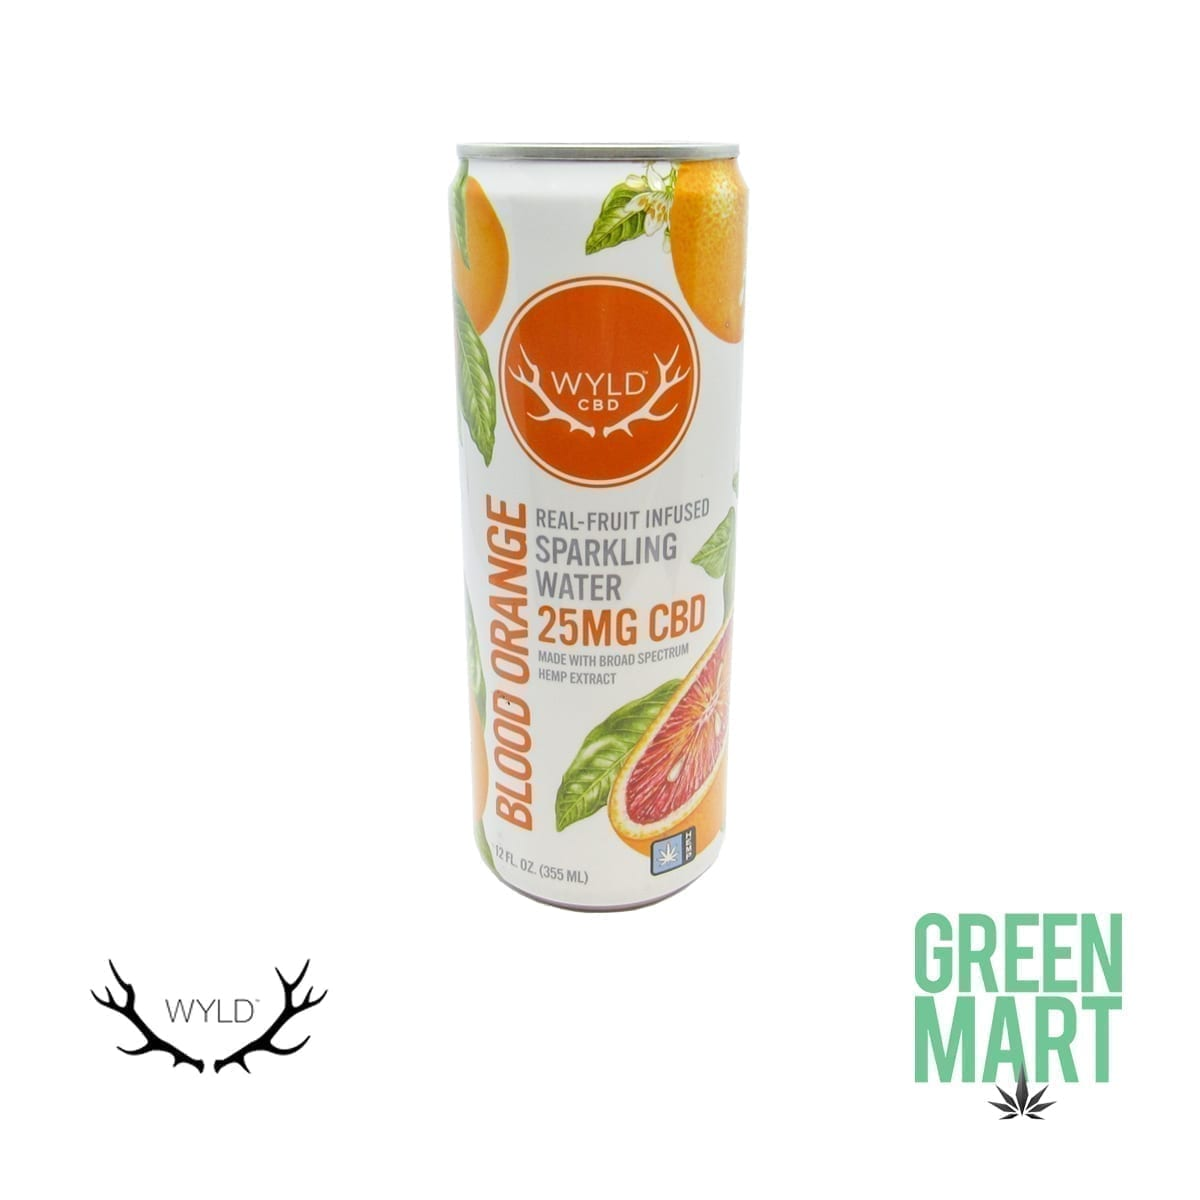 Wyld Blood Orange CBD Sparkling Water Front